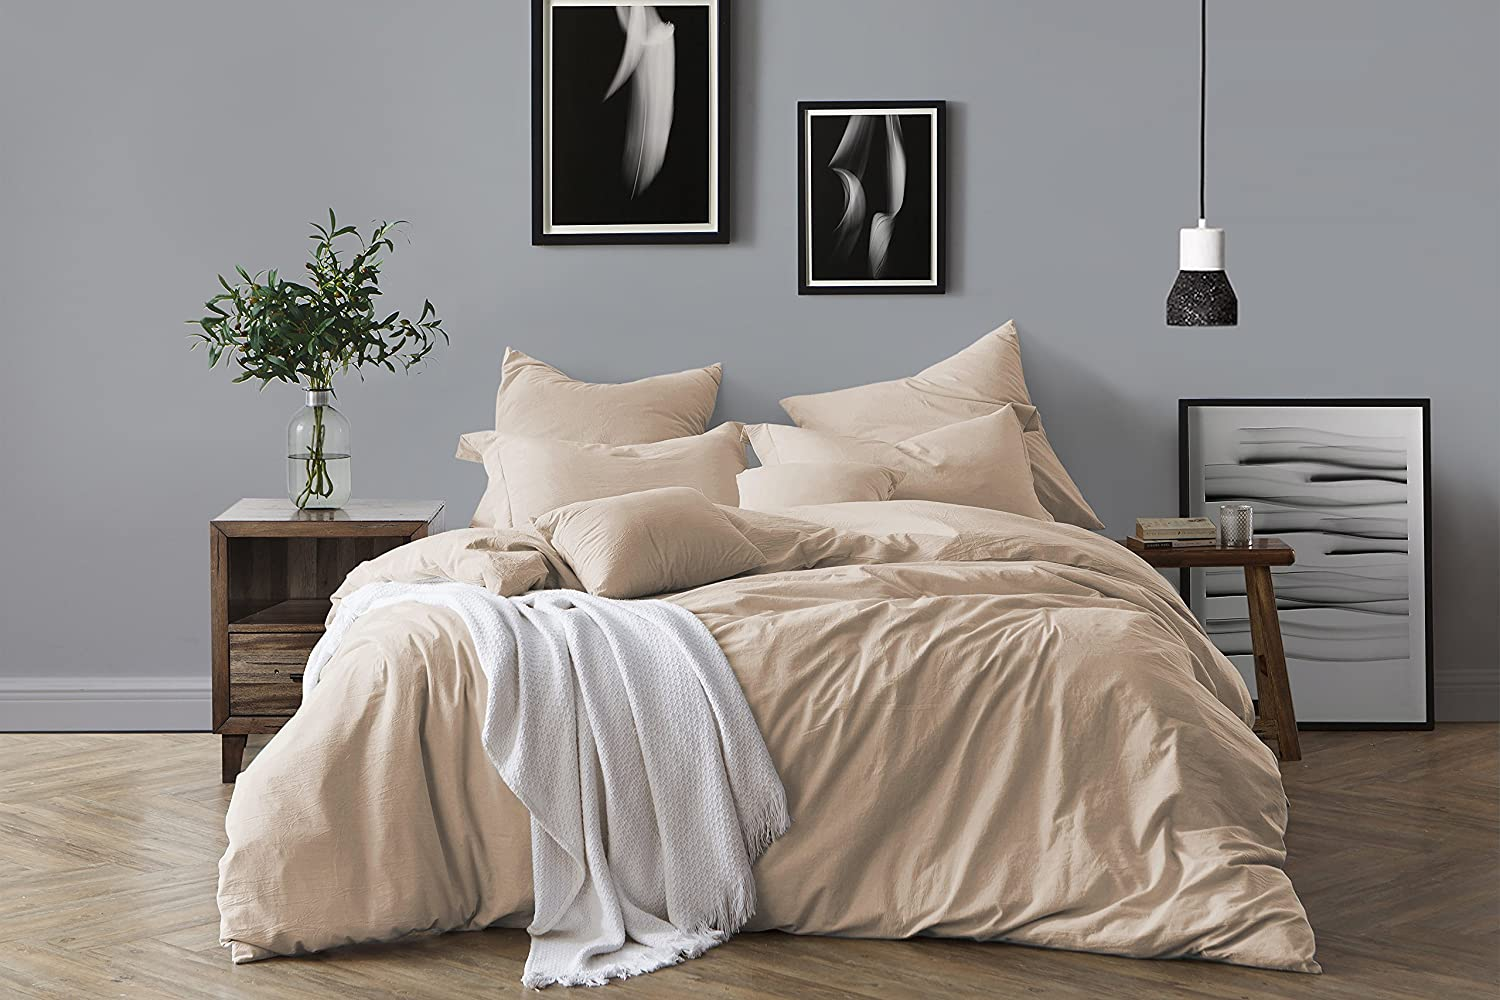 Swift Home 100% Cotton Washed Yarn Dyed Chambray Duvet Cover & Sham Bedding Set, Ultra-Soft Luxury & Natural Wrinkled Look – King/California King, Almond